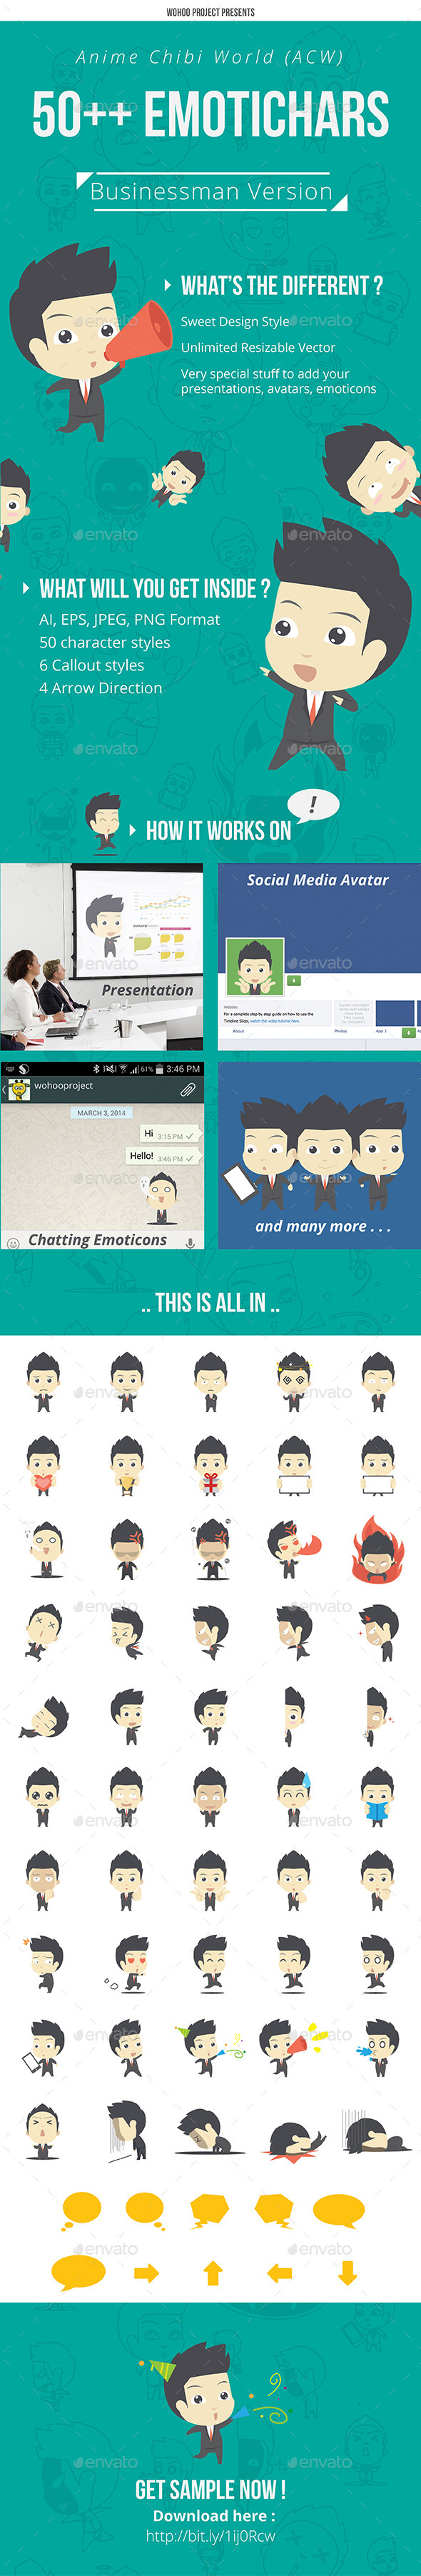 50& Emotichars Businessman Version